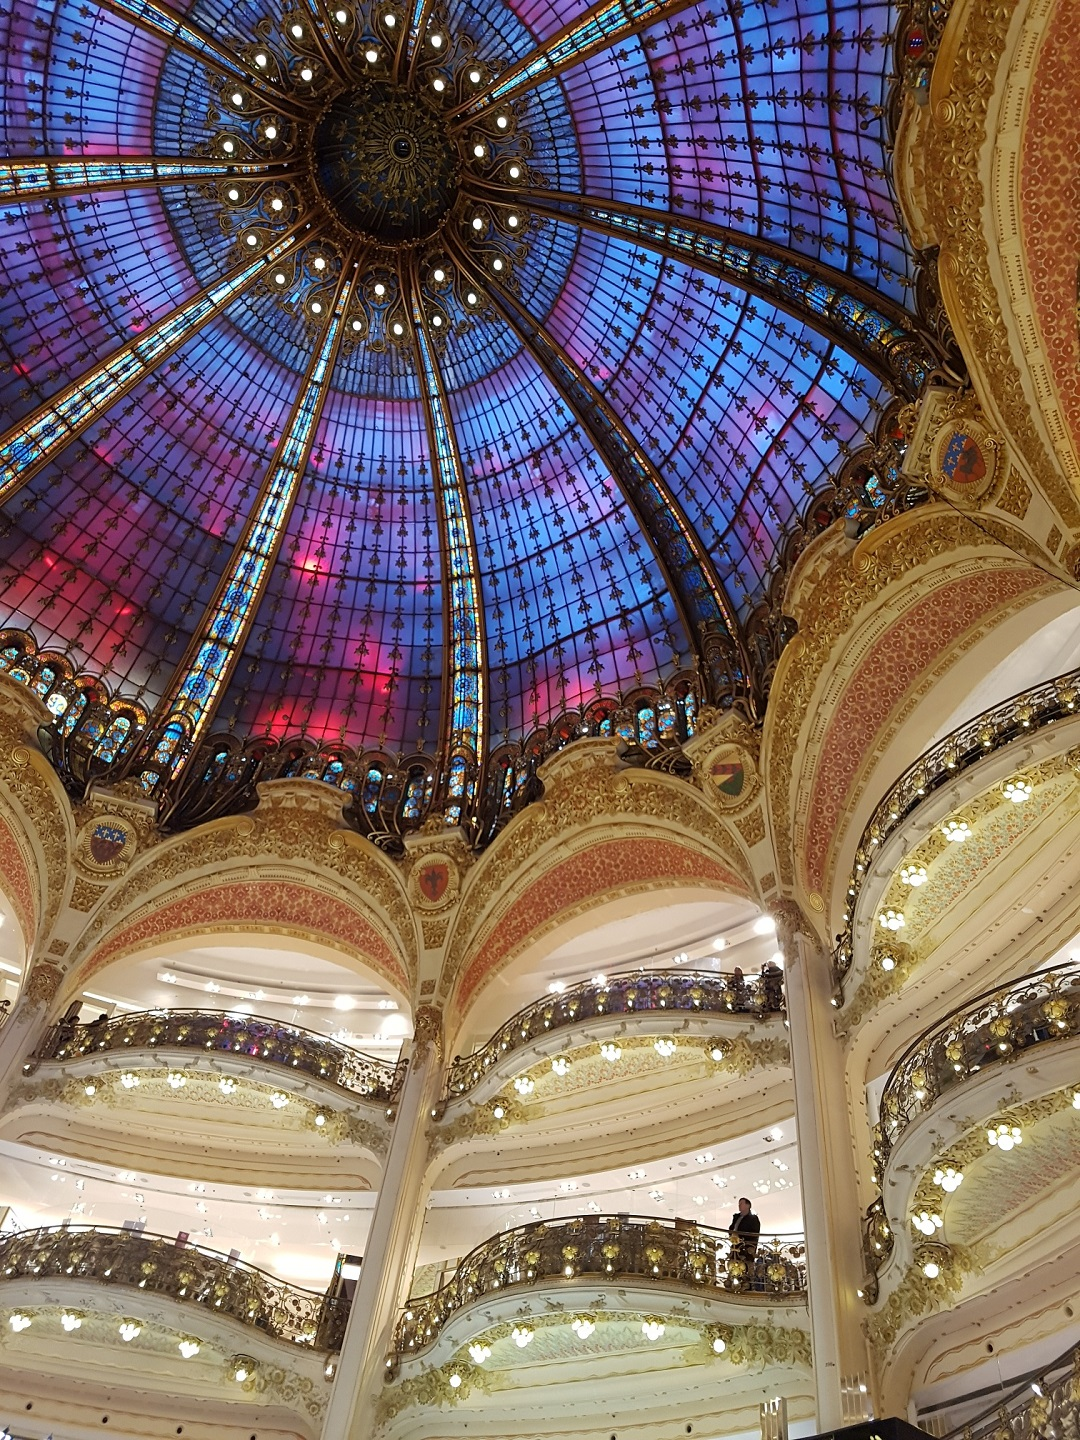 Galleries Lafayette coloured glass roof